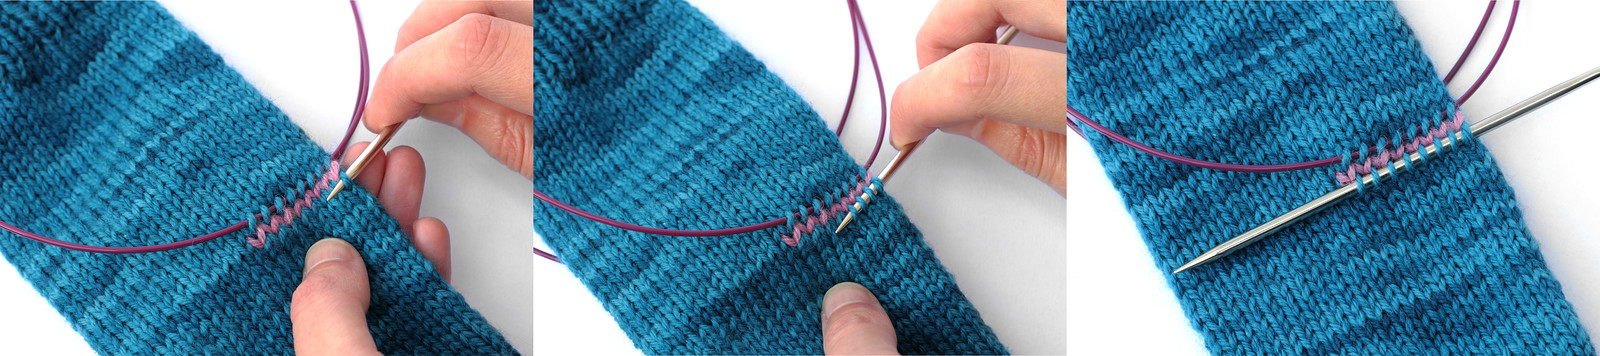 Picking Up Stitches In Knitting Mitten Thumb : Mitt-O-Matic Fingerless Mittens Generator free knitting pattern on Its a...